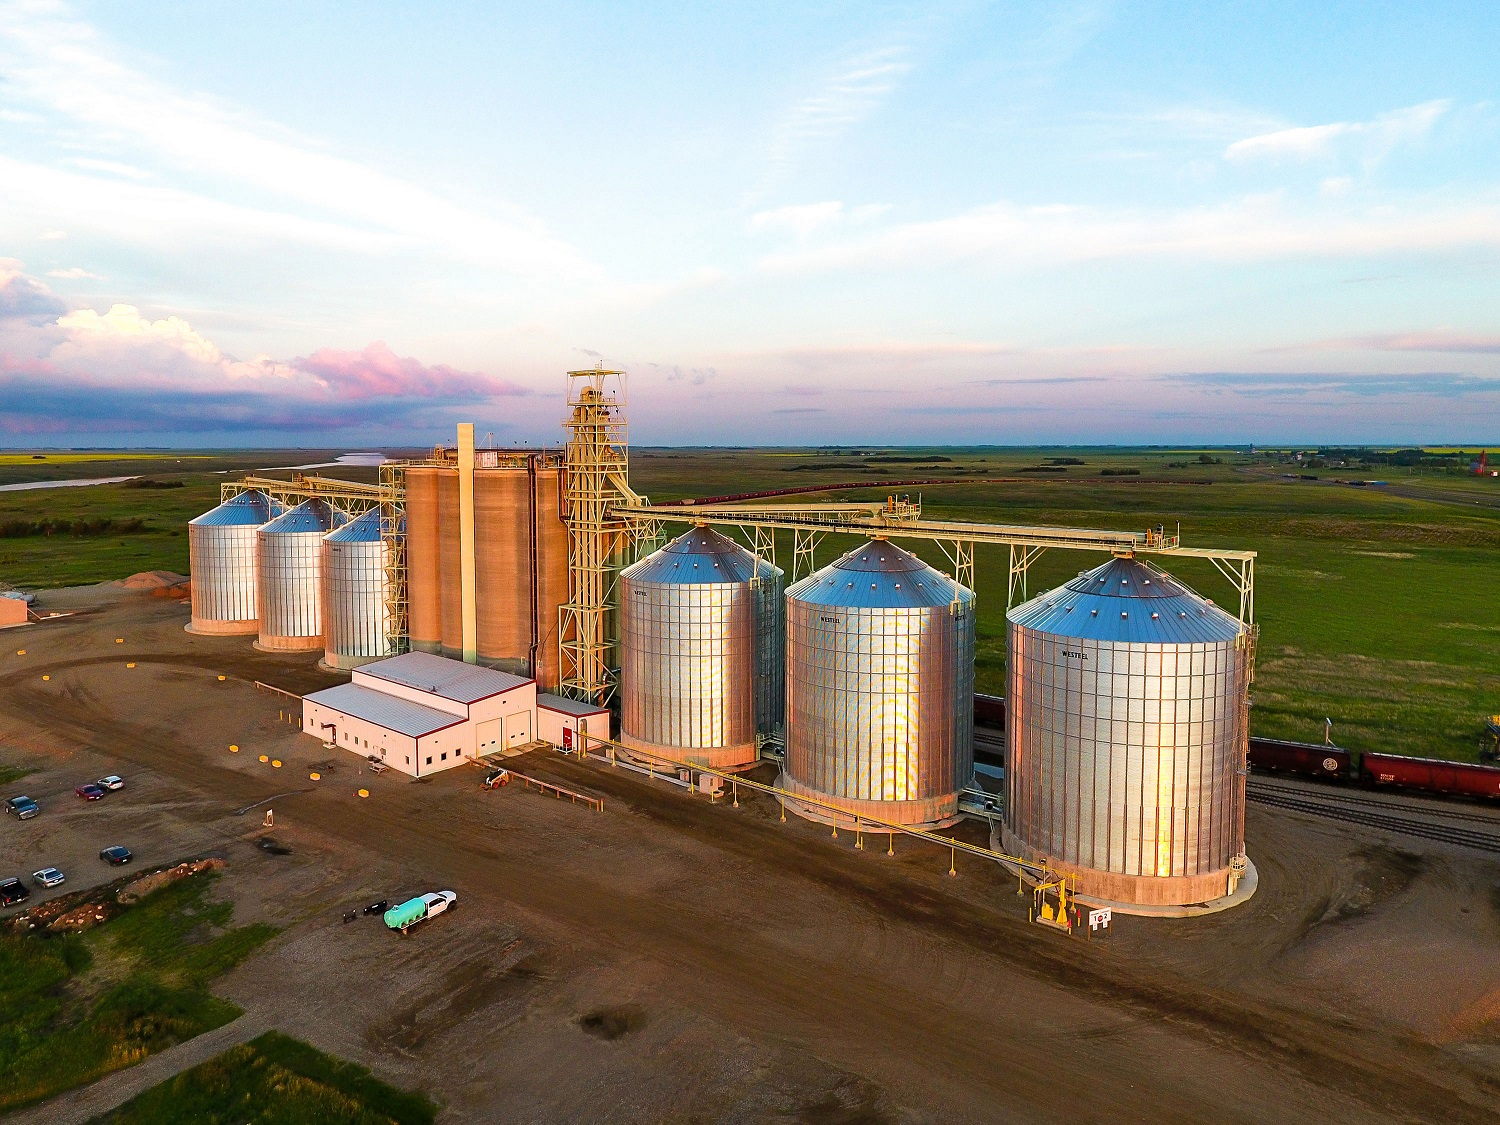 Northgate concrete silos with inner stice bins inland grain terminal engineering Ag-industrial Agribusiness Interstice Steel bins Bushels Tandem receiving Rail car shipping Cleaner line Grain terminal design construction Design-build Slipform concrete silos